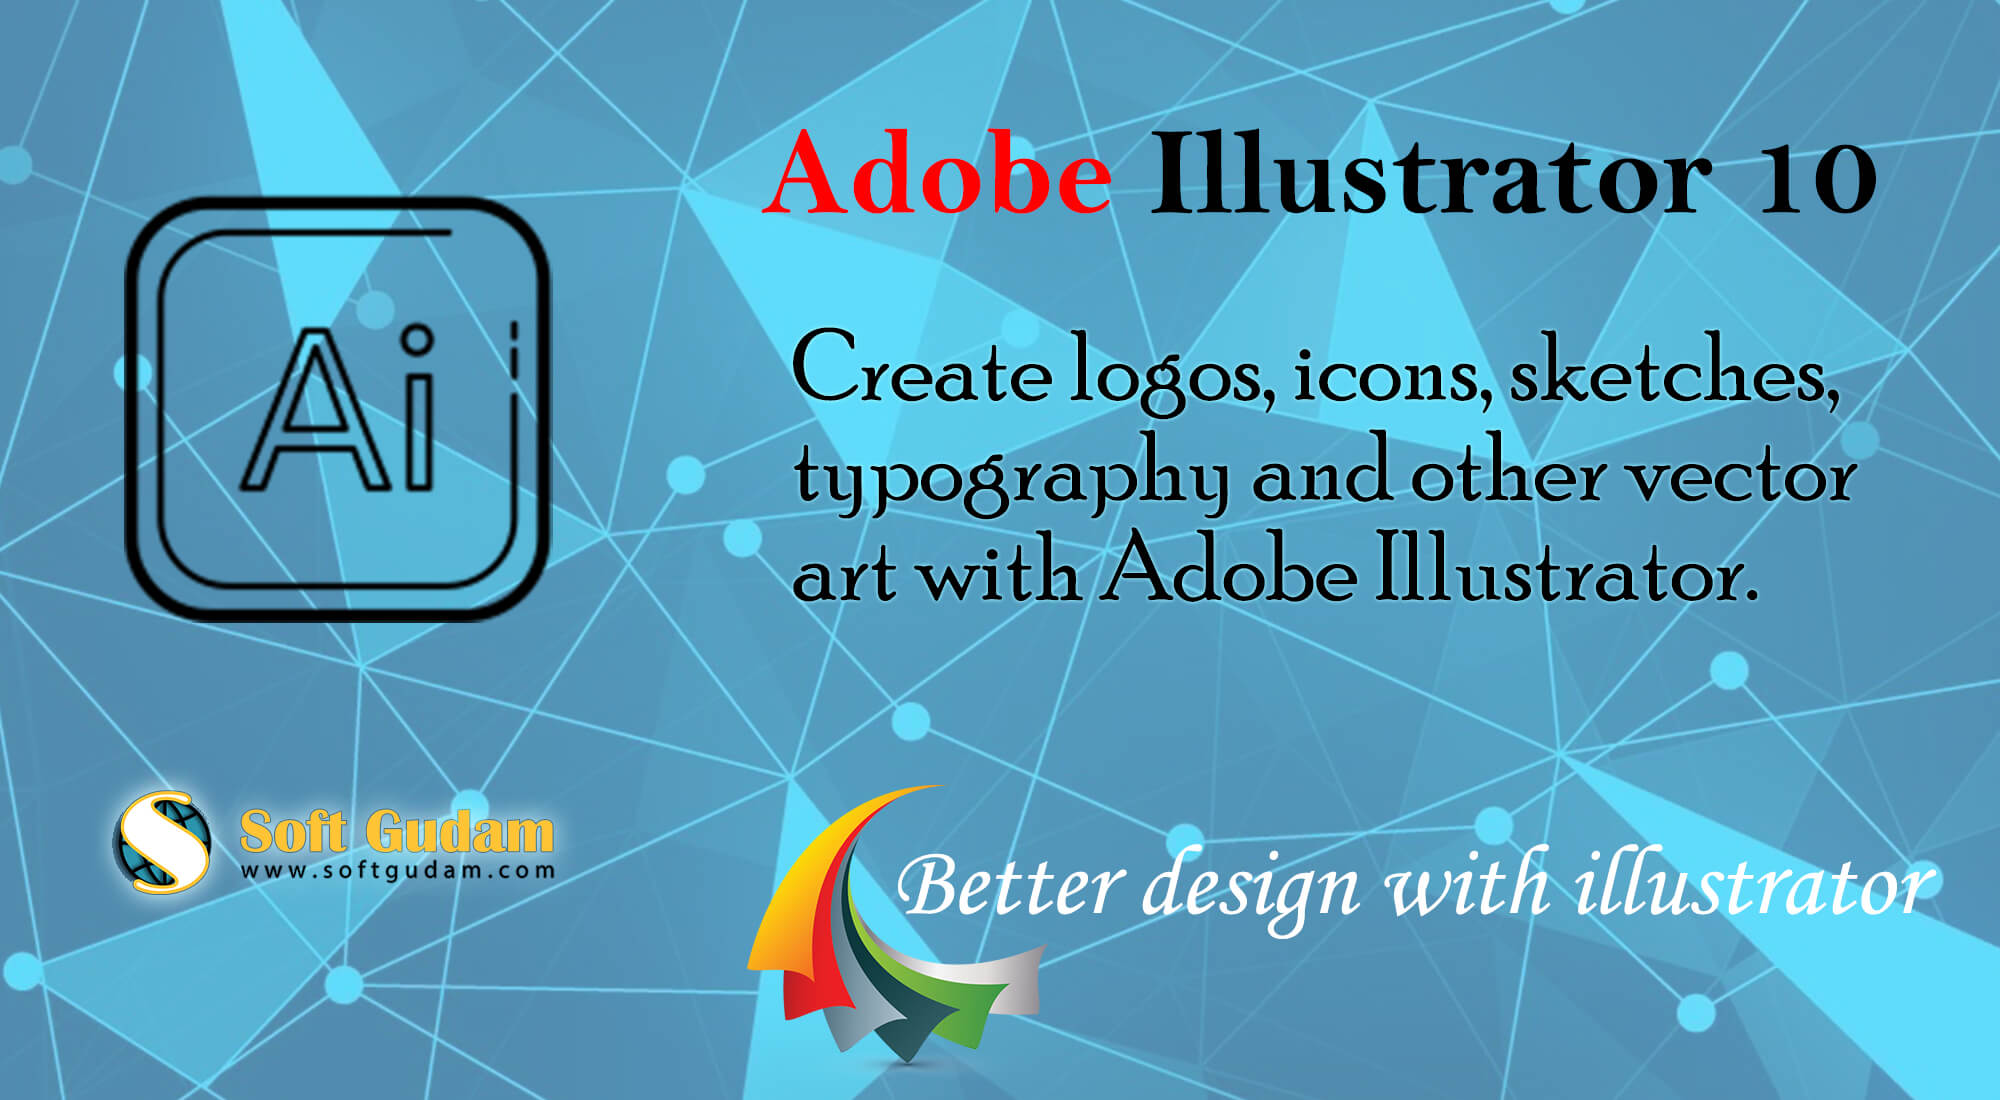 Adobe Illustrator 10 Free Download Full Latest Version For PC